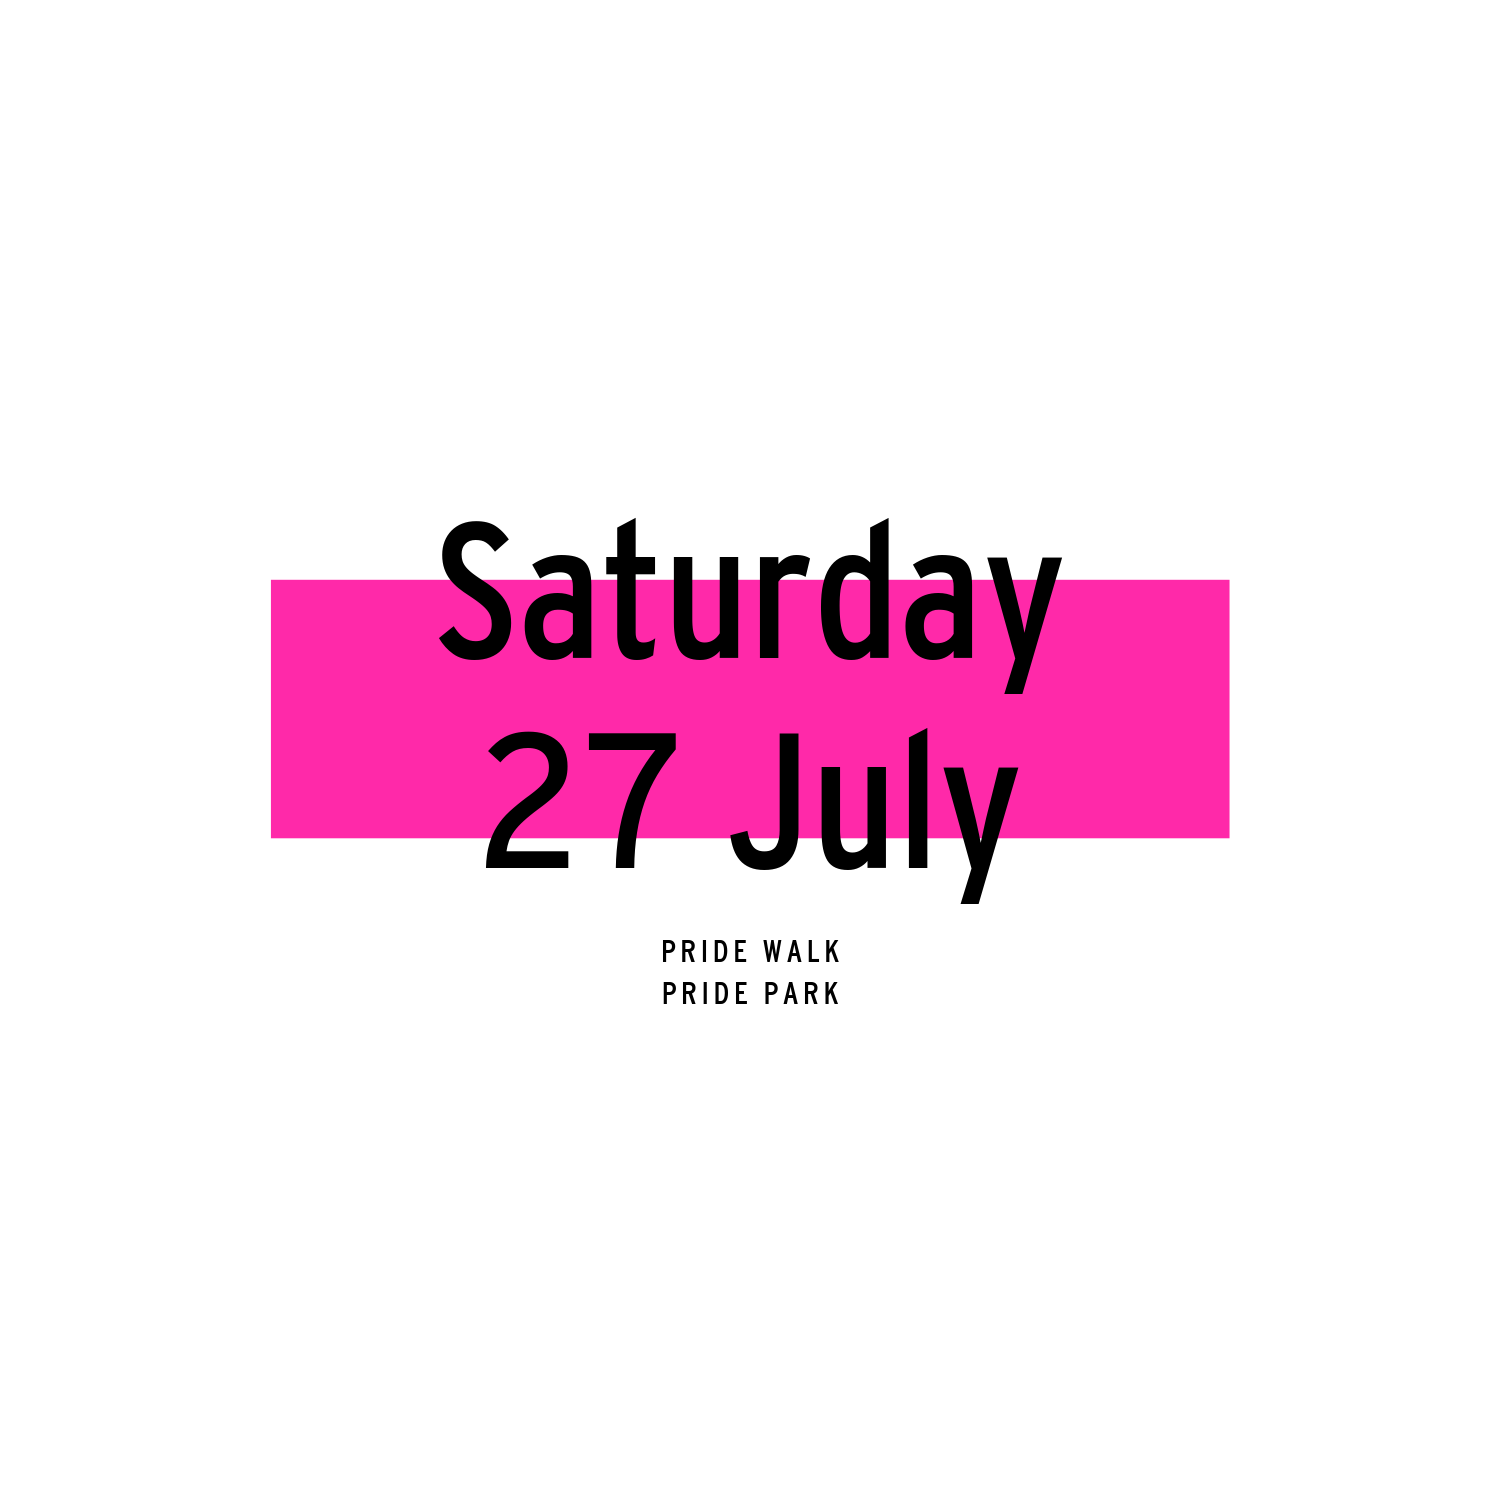 Saturday 27 July | 2019